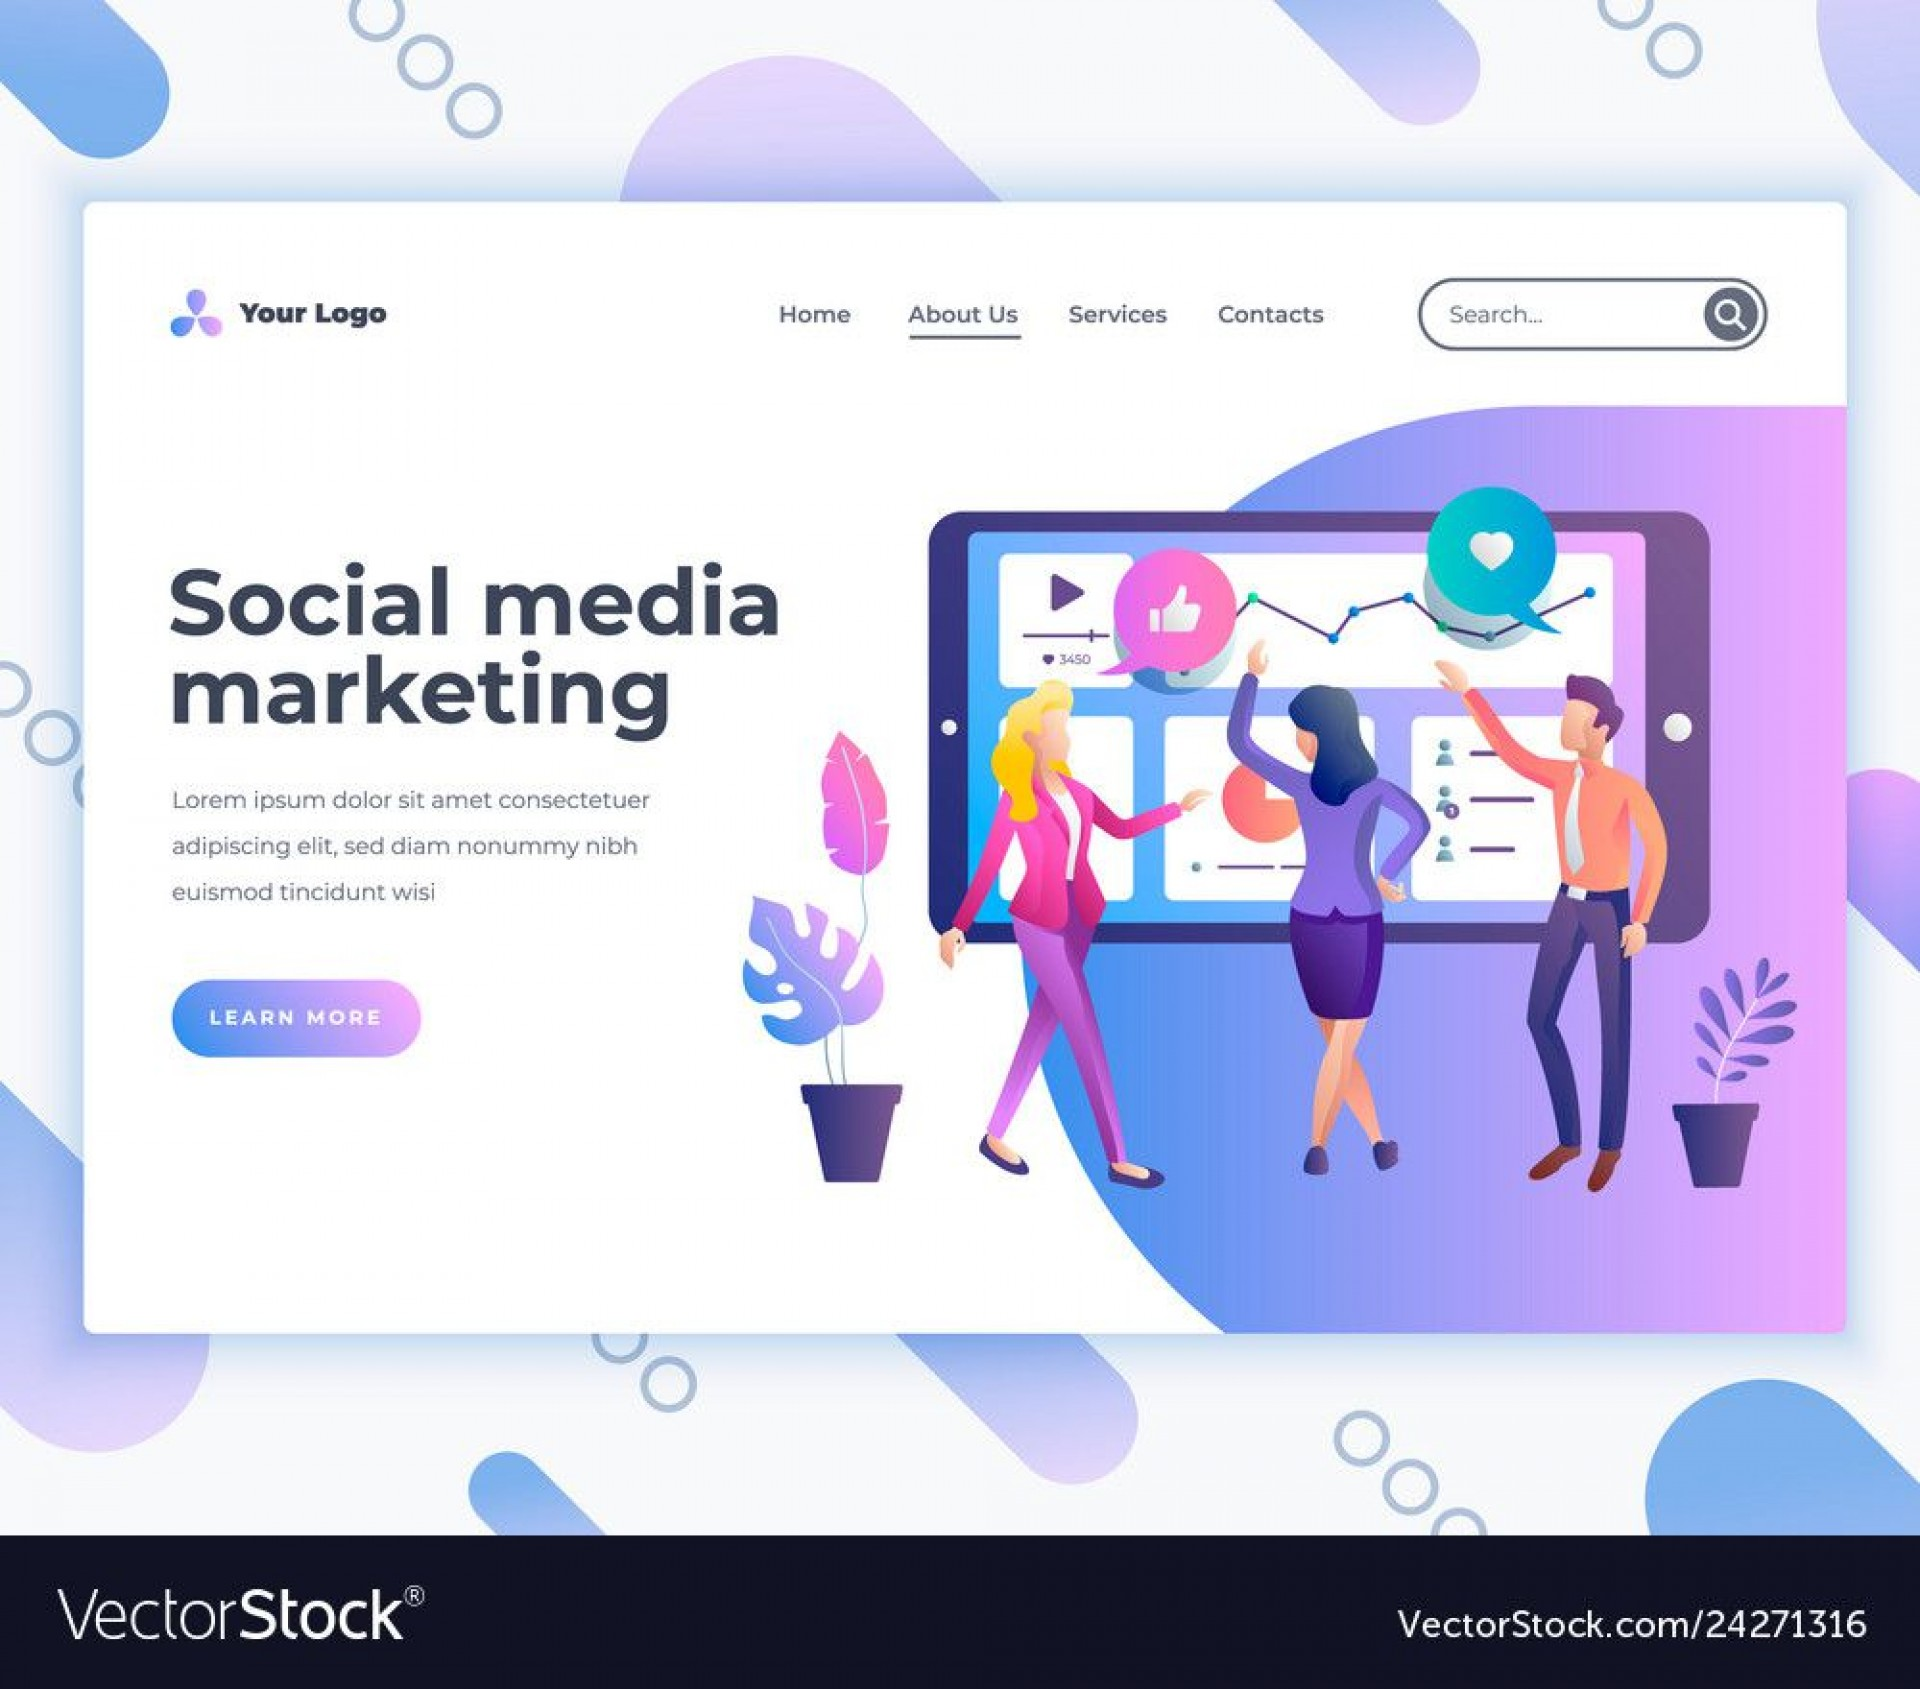 004 Awesome Social Media Marketing Template Highest Quality  Free Wordpres Ppt1920